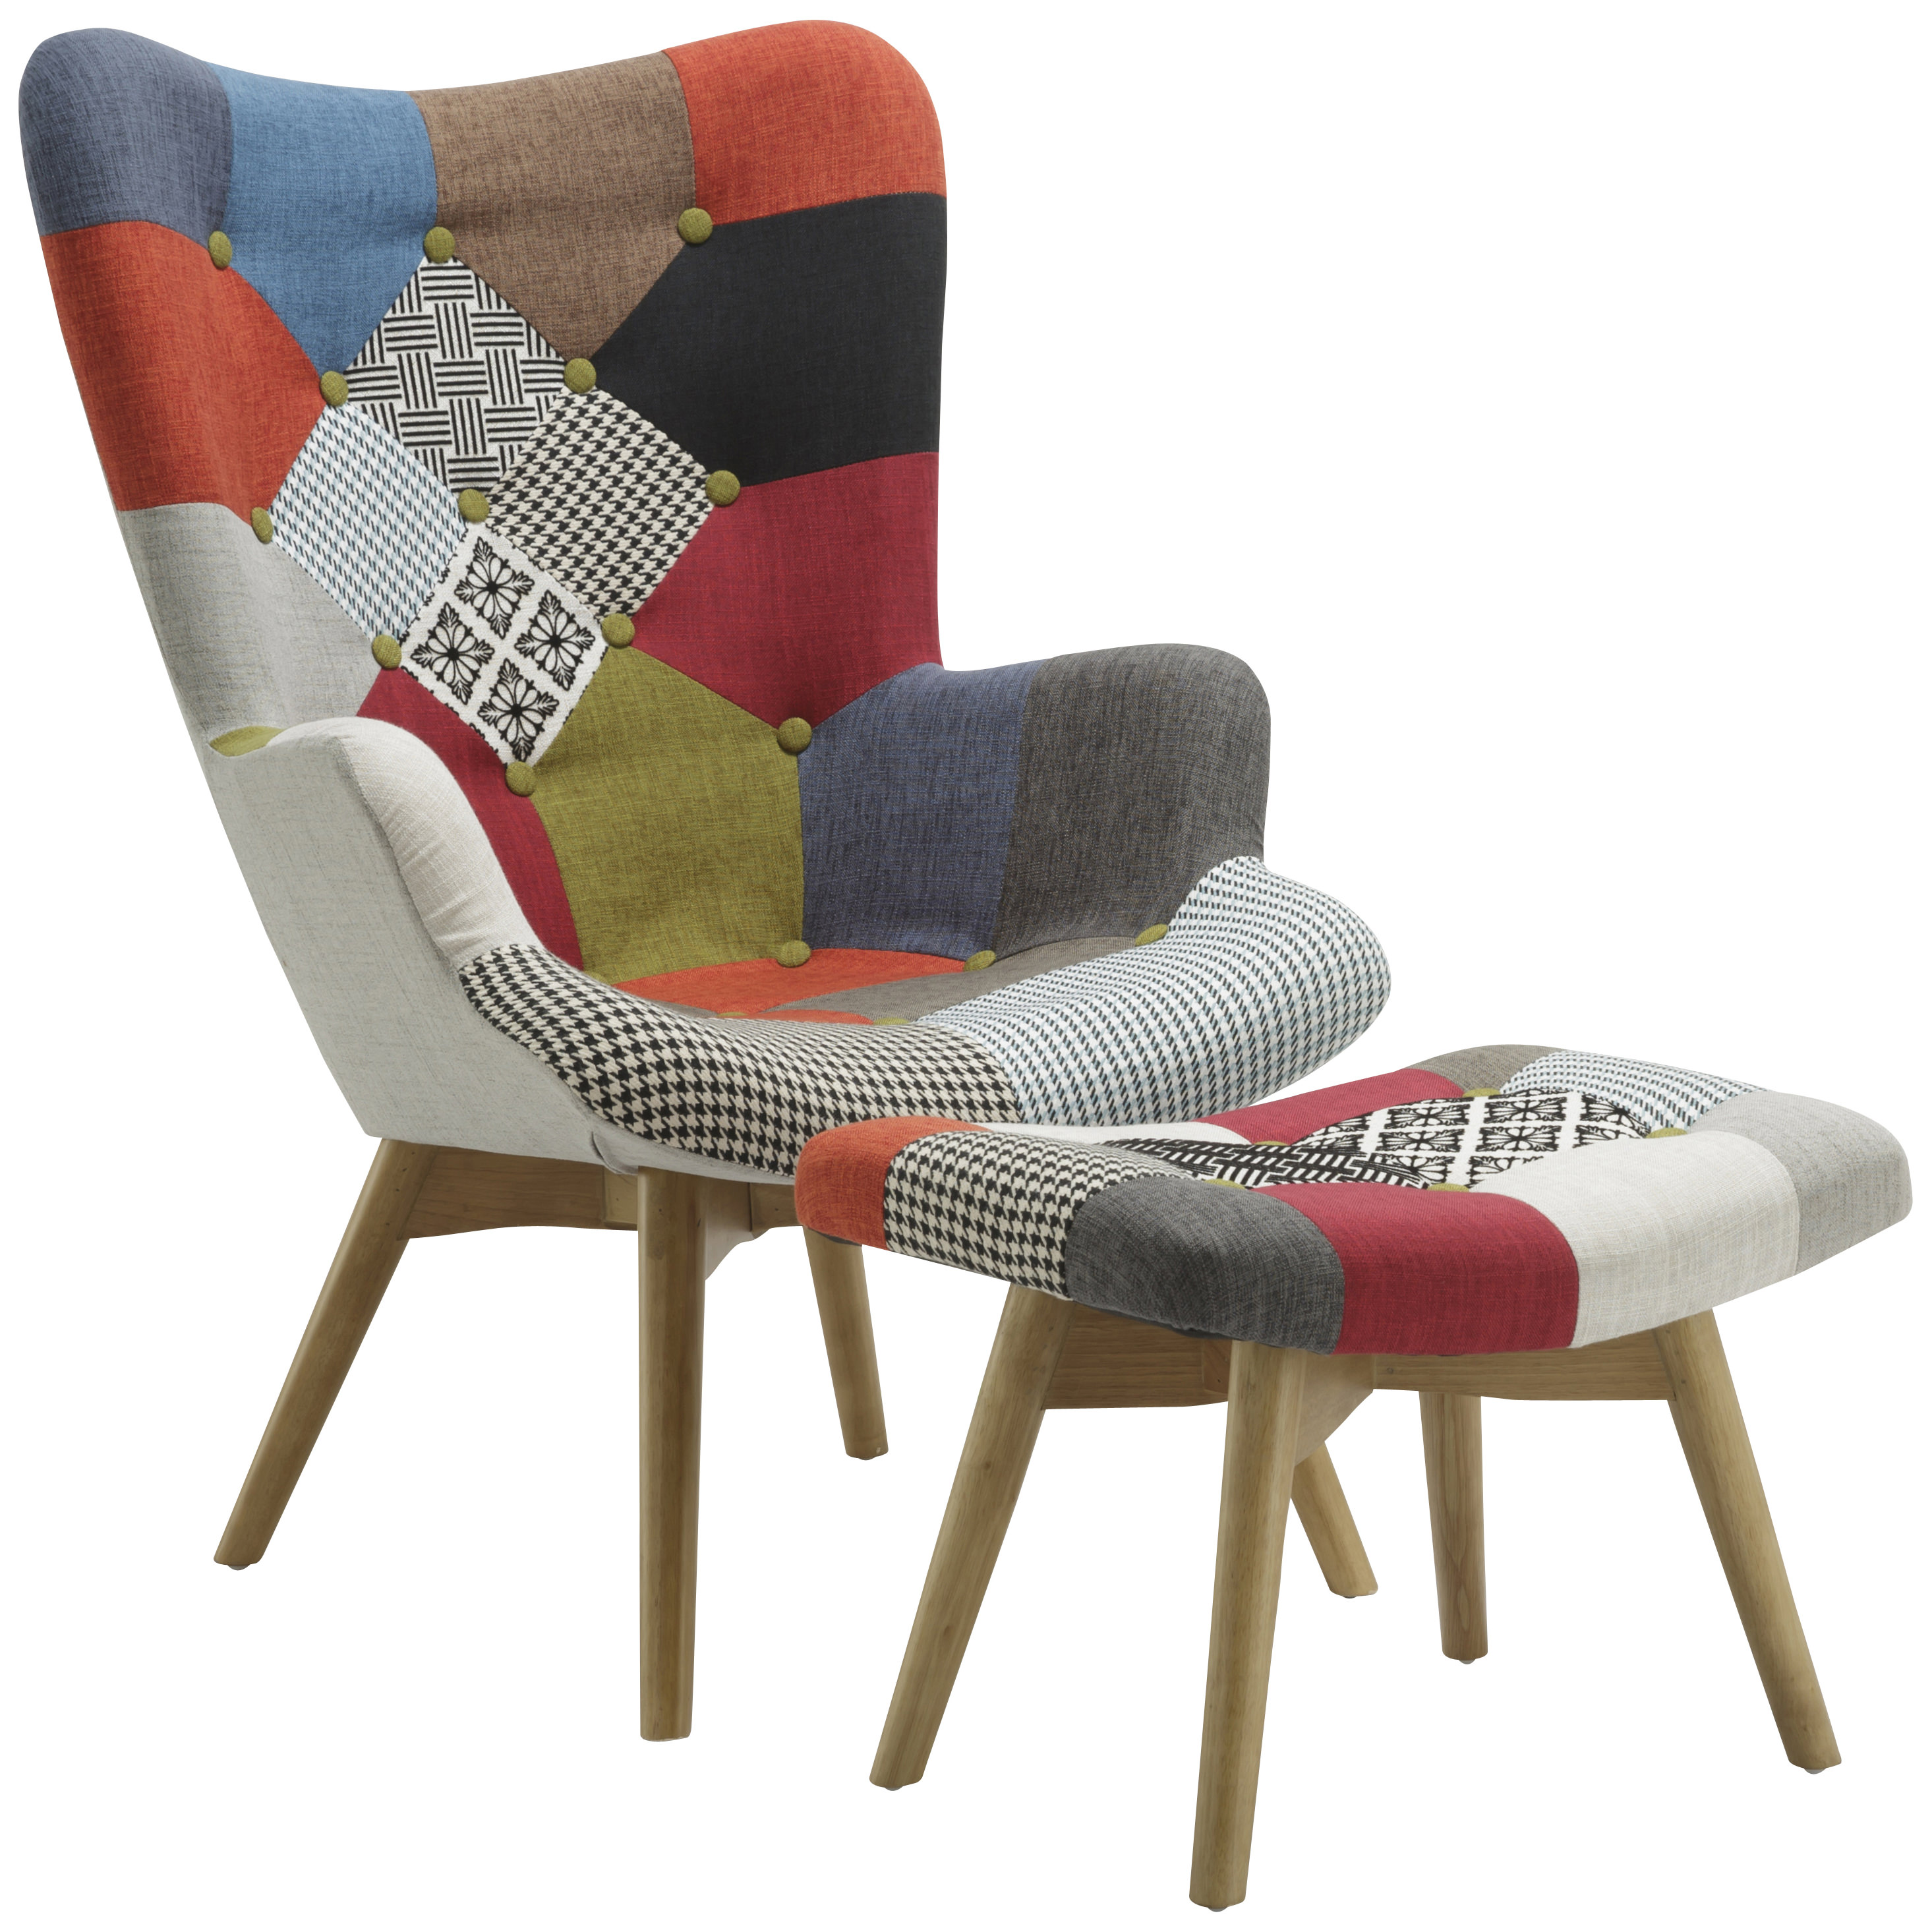 Patched Fabric Armchair Sofa Seat Tub Club Chair